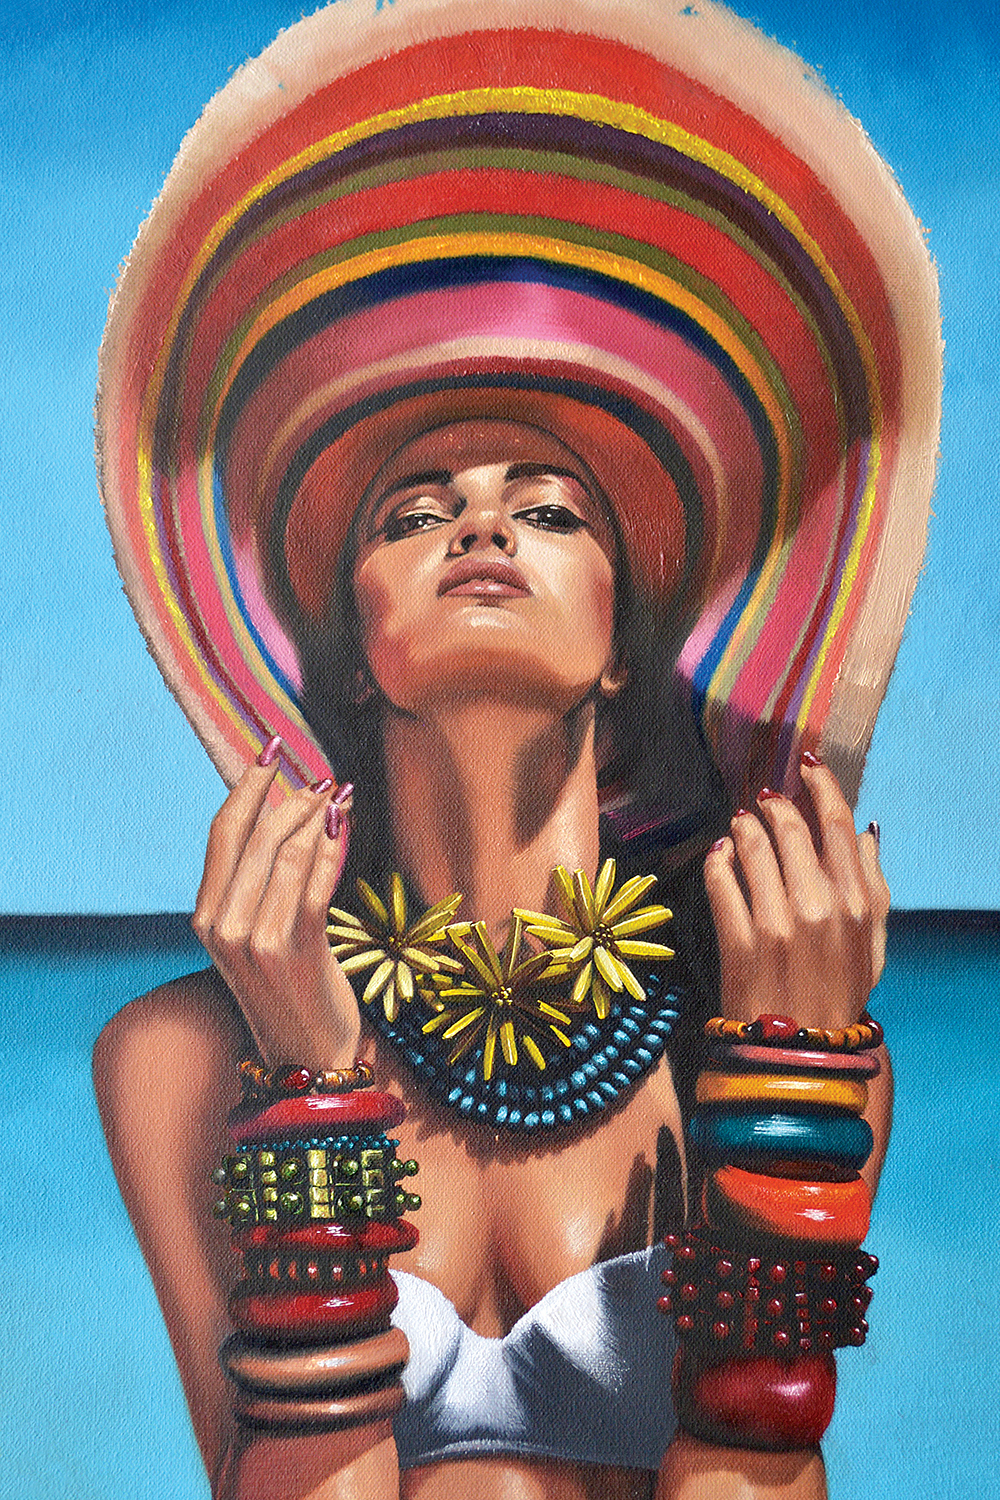 woman wearing large colorful sun hat, oversized necklaces, many bracelets, and white bathing suit top in front of blue